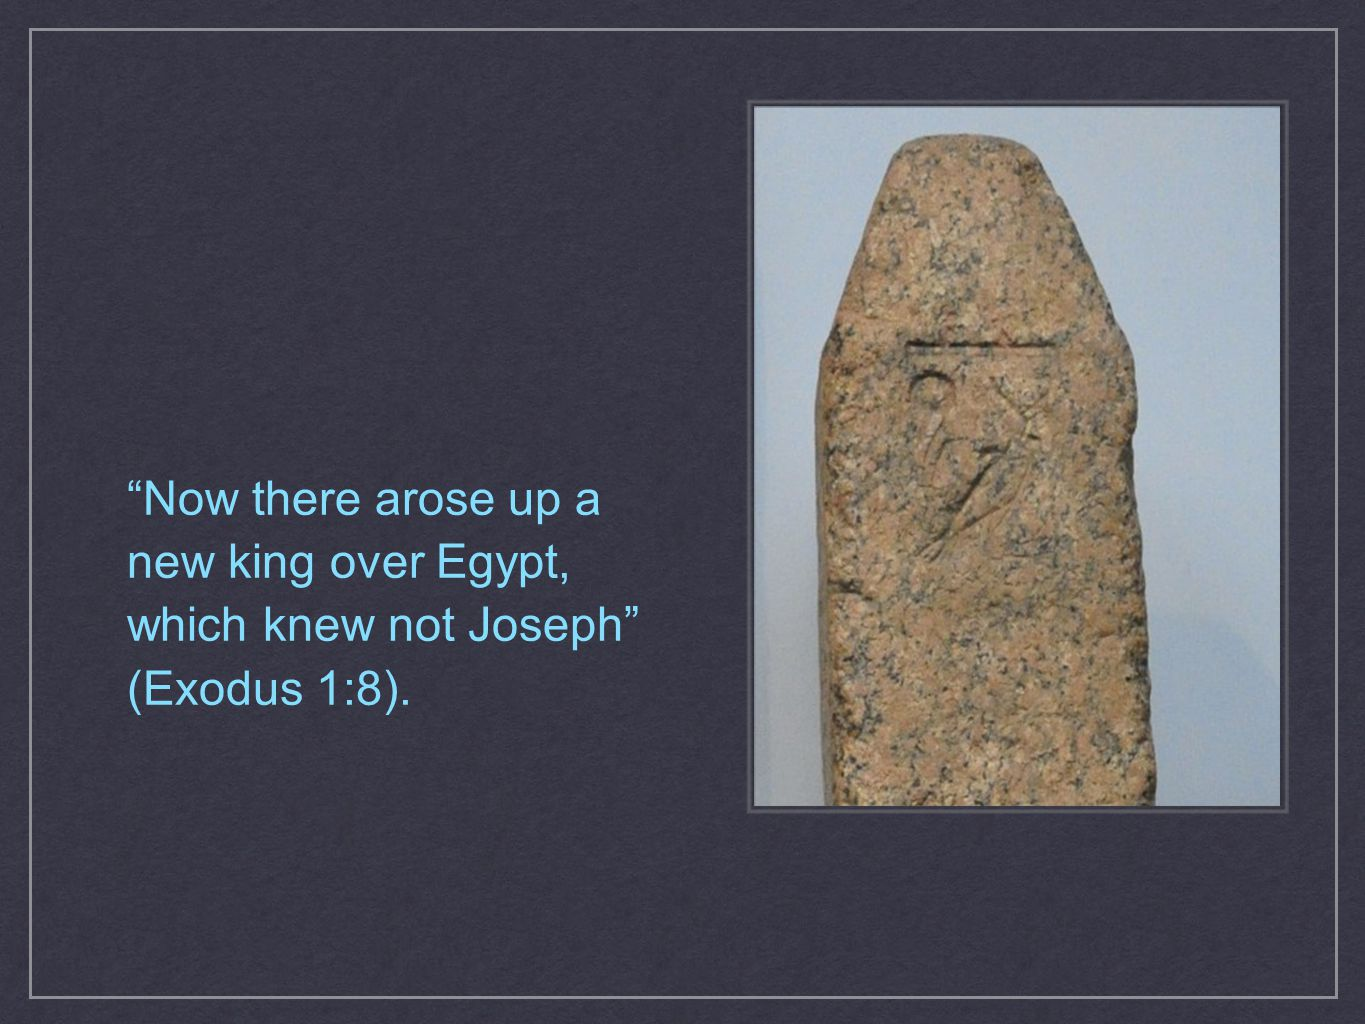 This gospel was not hidden in the days of Egypt's might.